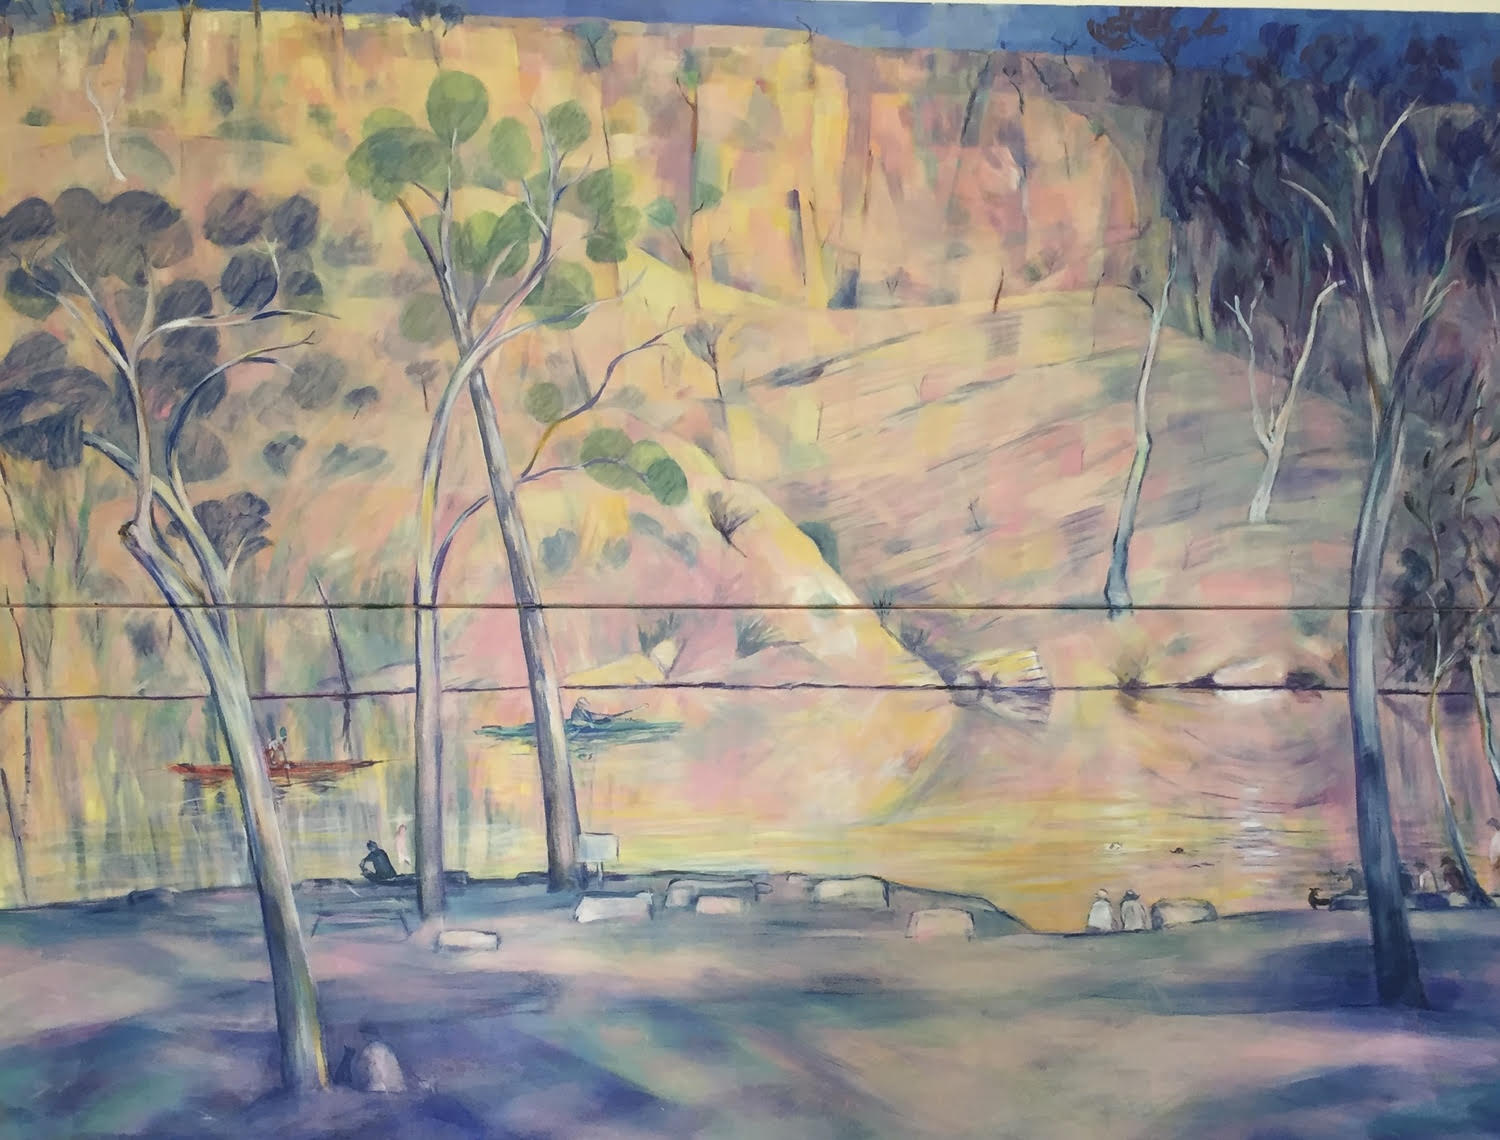 Artists of Boroondara Online Gallery 2020